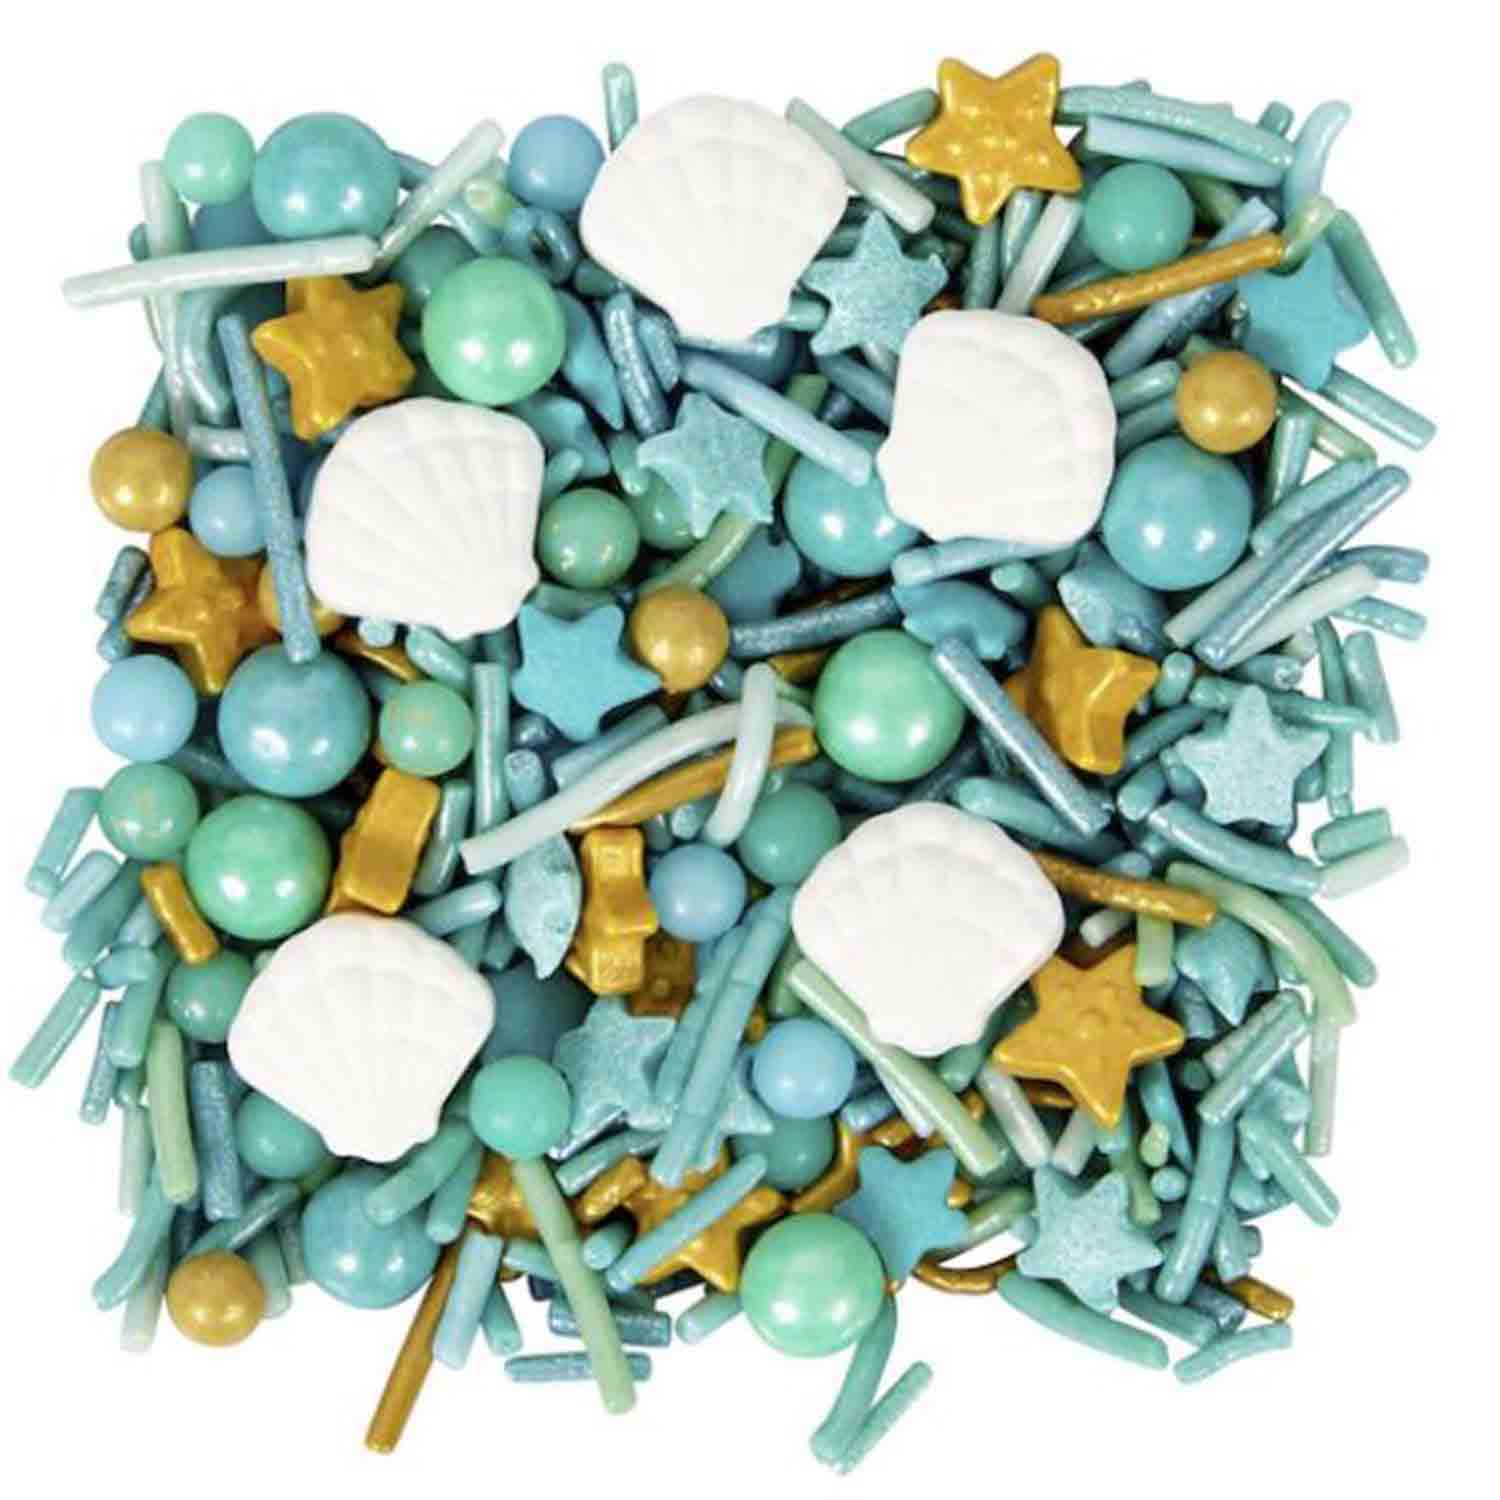 Green Apple Candy Beads